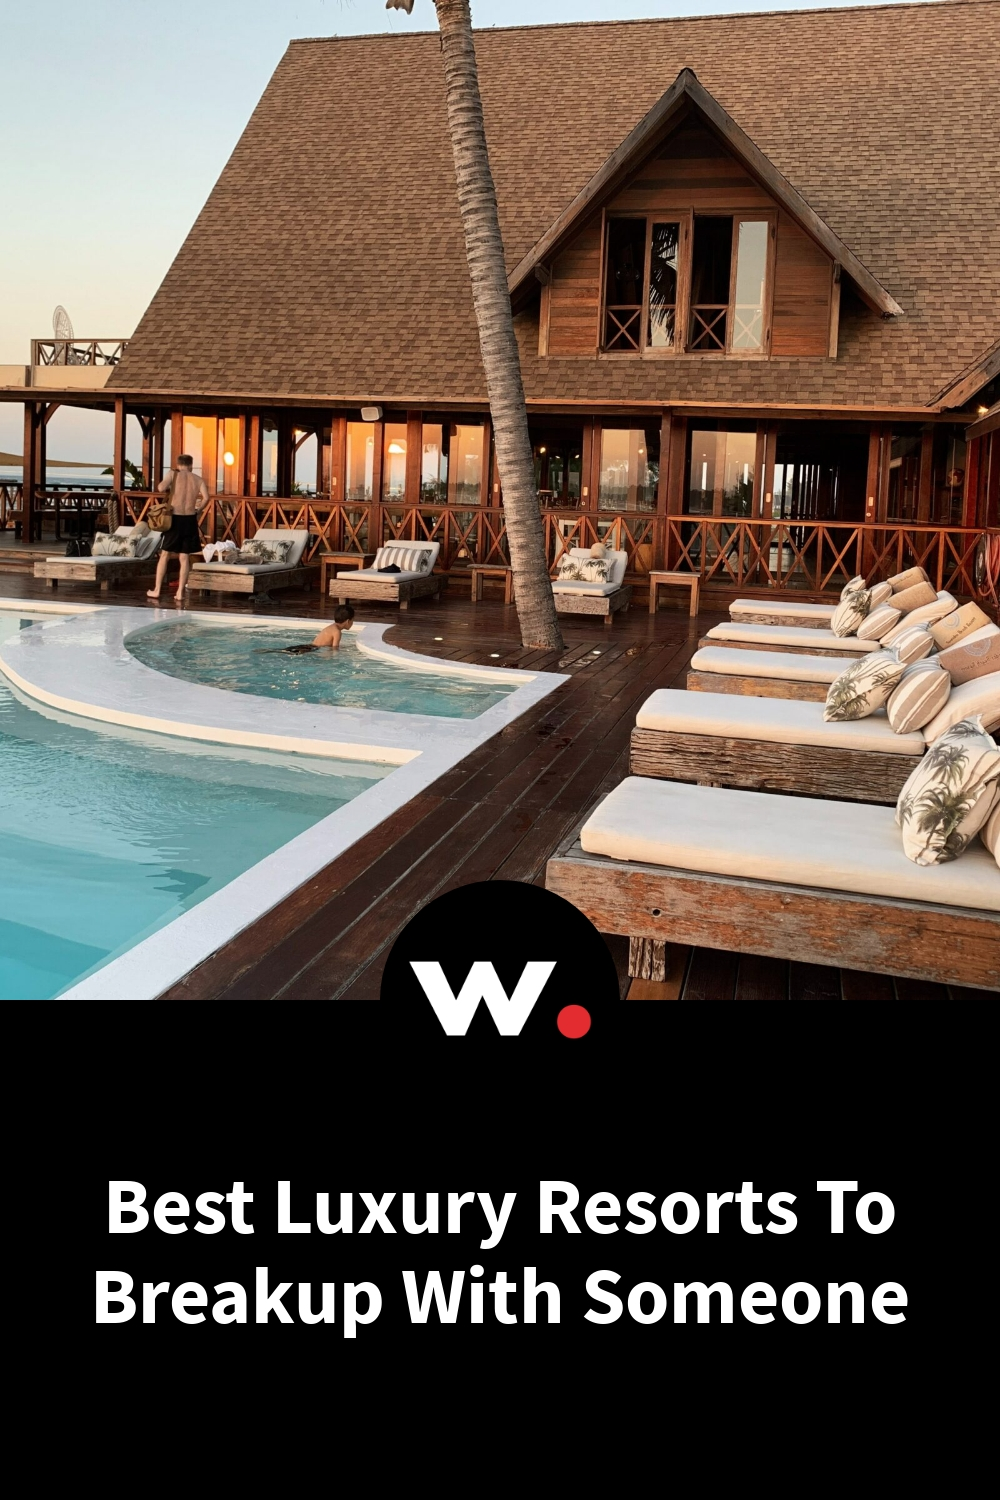 Best Luxury Resorts To Breakup With Someone